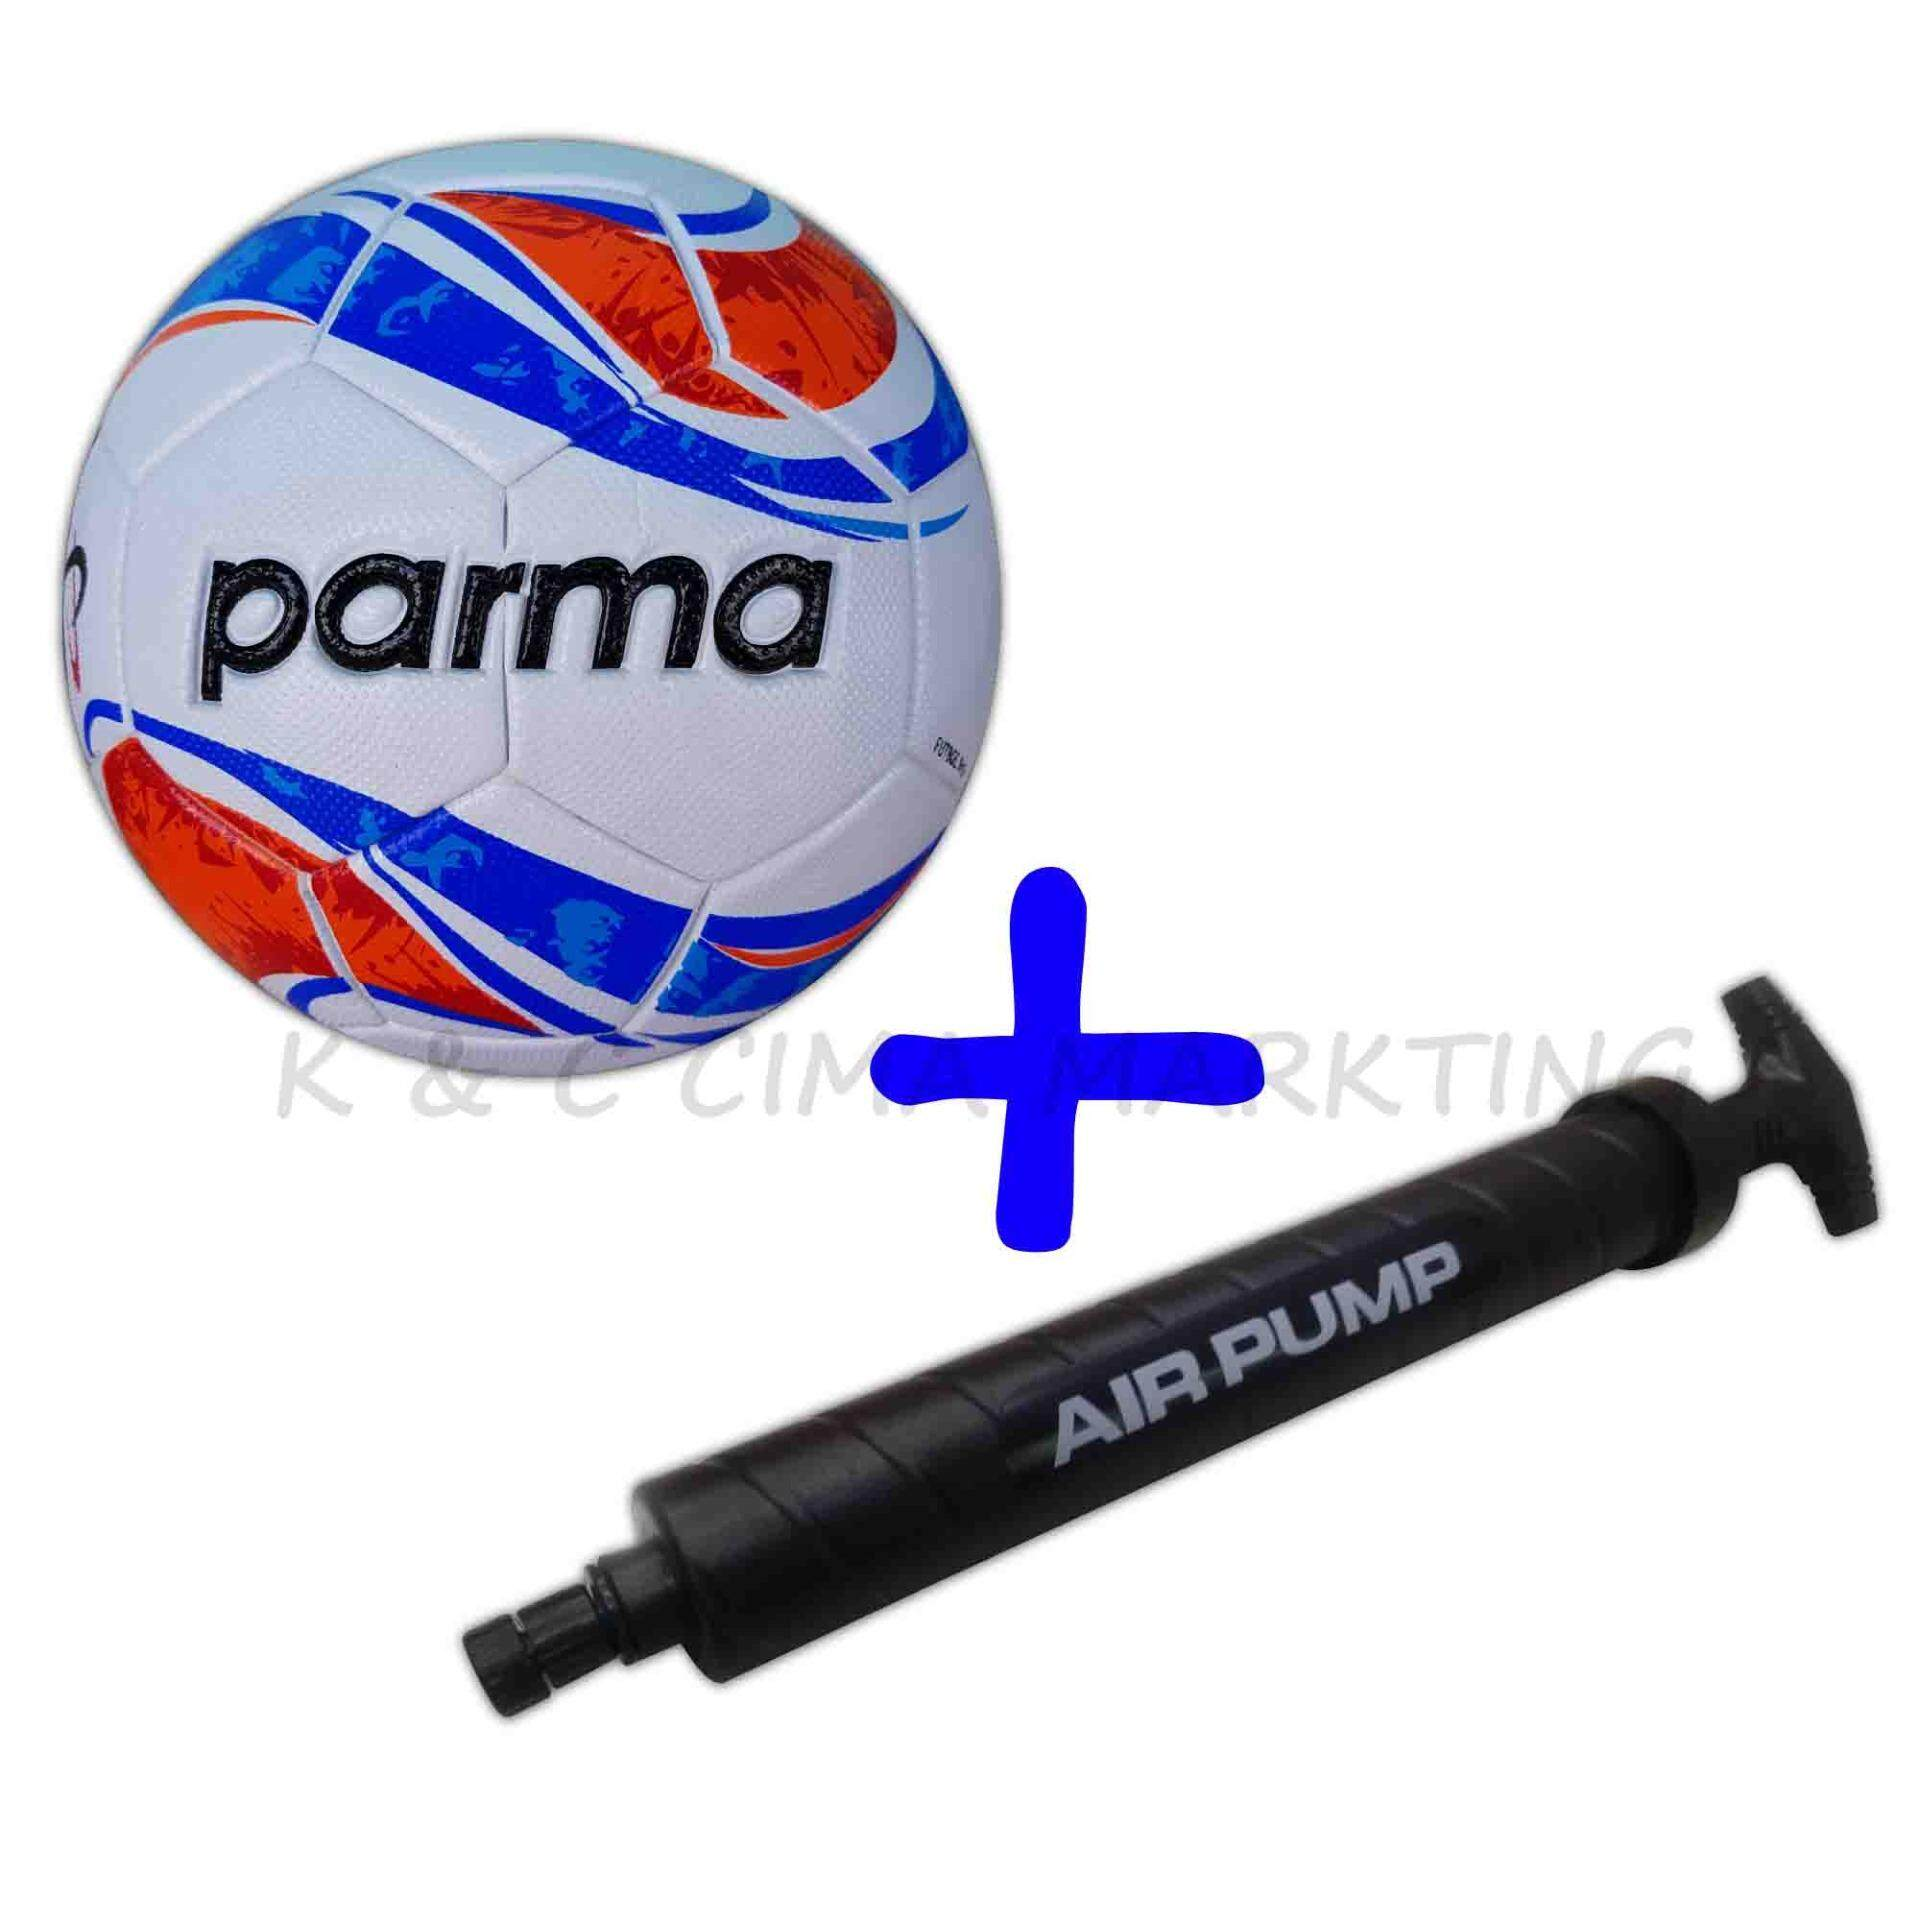 Parma Laminated Football Size 5 889 With Double Action Hand pump